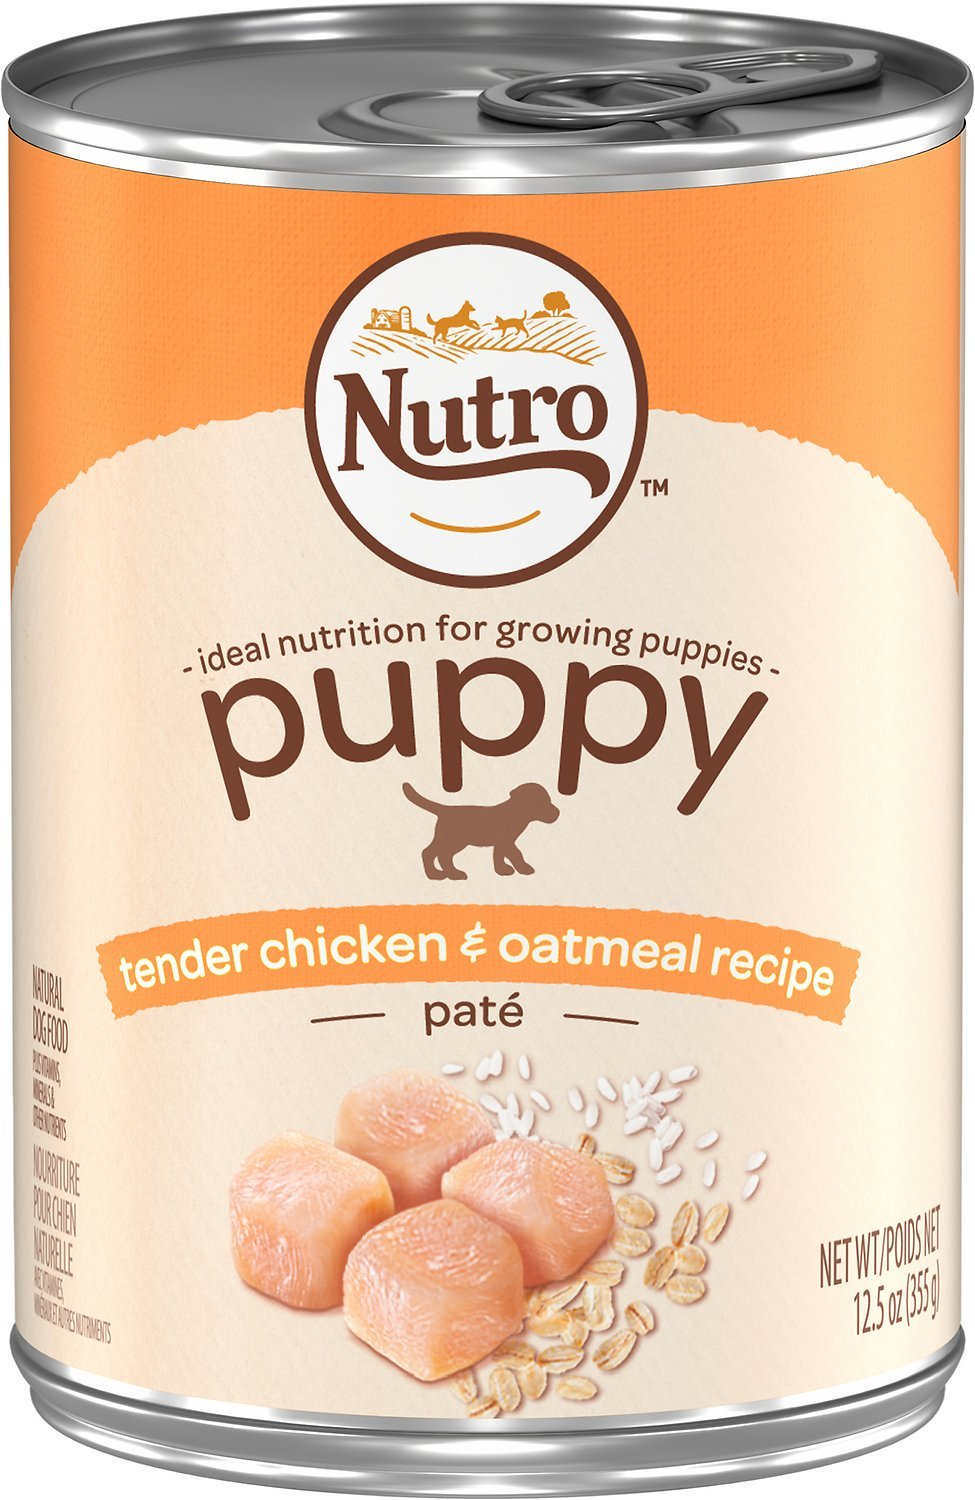 Nutro Puppy Tender Chicken and Oatmeal Pate Formula Canned Dog Food 12.5oz 00082